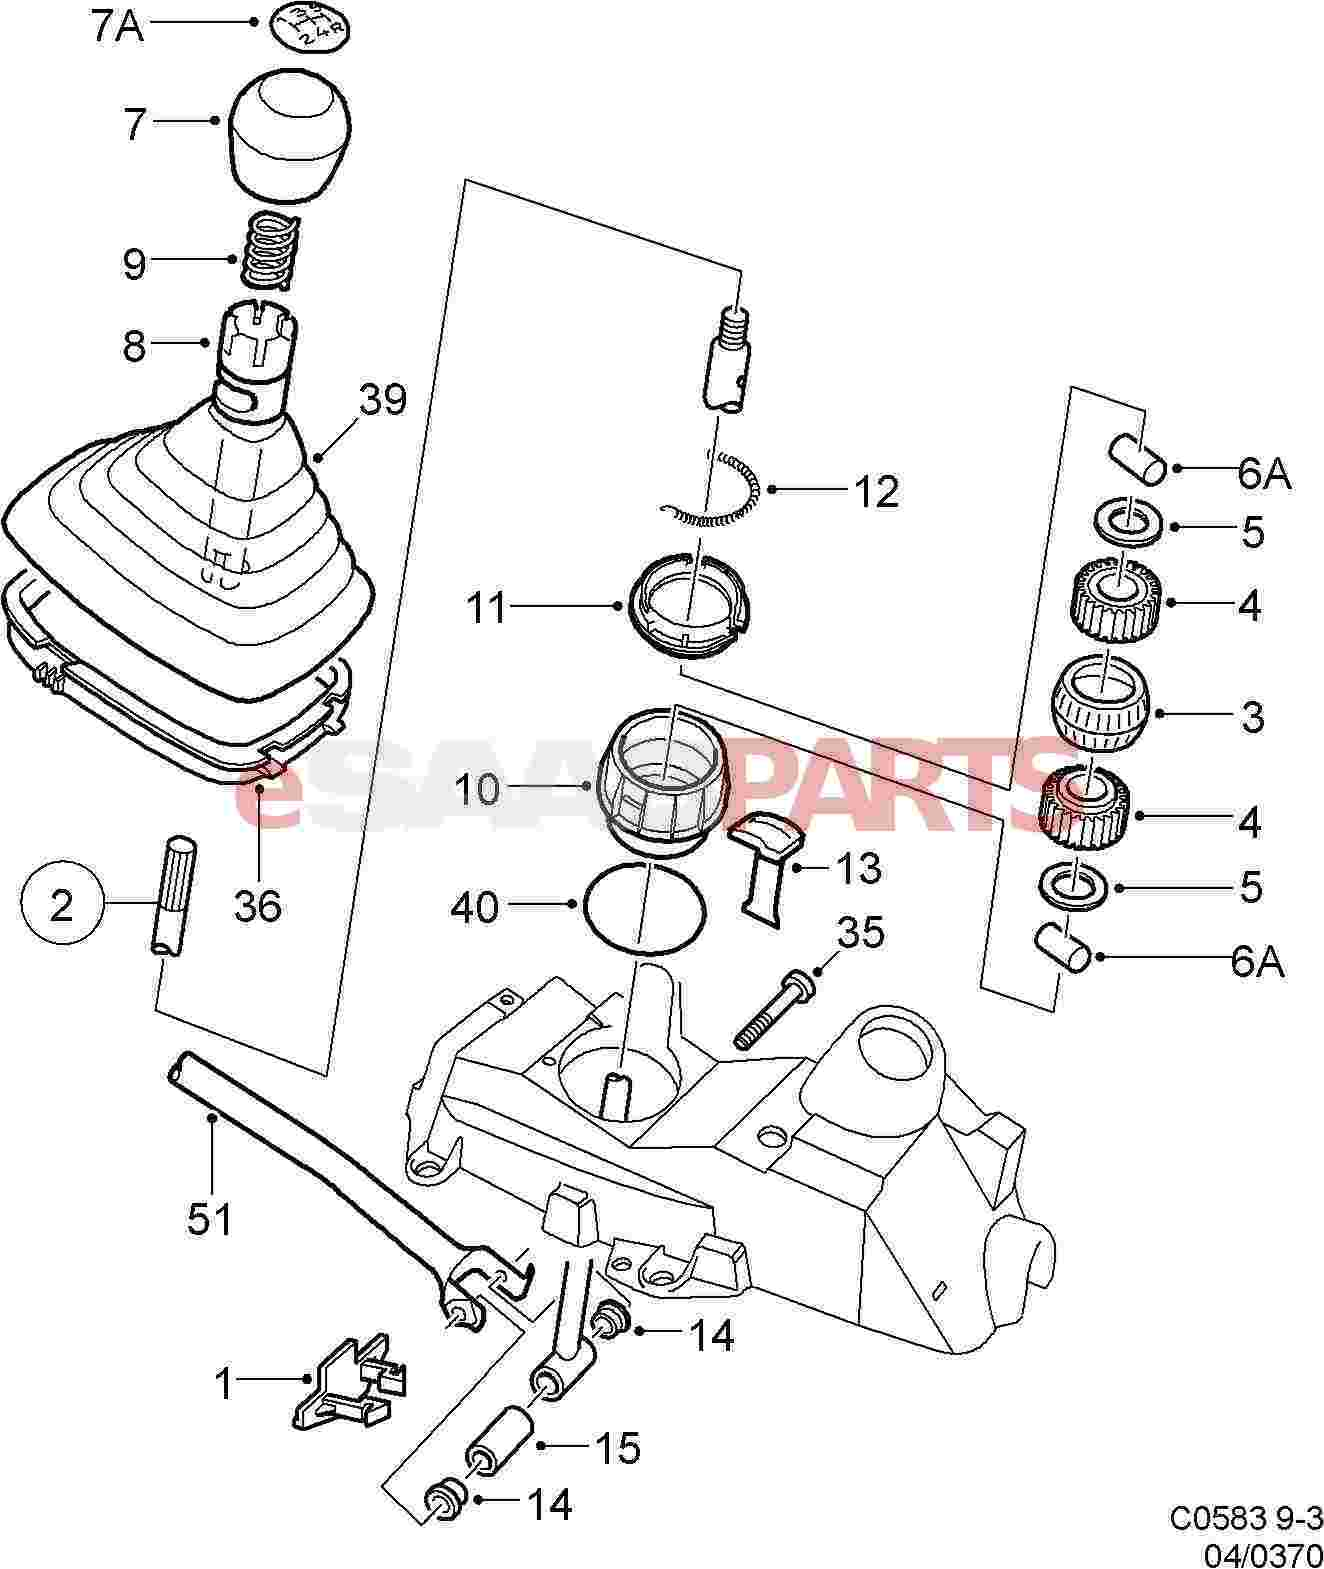 4490314 saab reverse lock genuine saab parts from esaabparts com rh esaabparts com 1999 saab 9-3 parts diagram saab 93 parts diagram